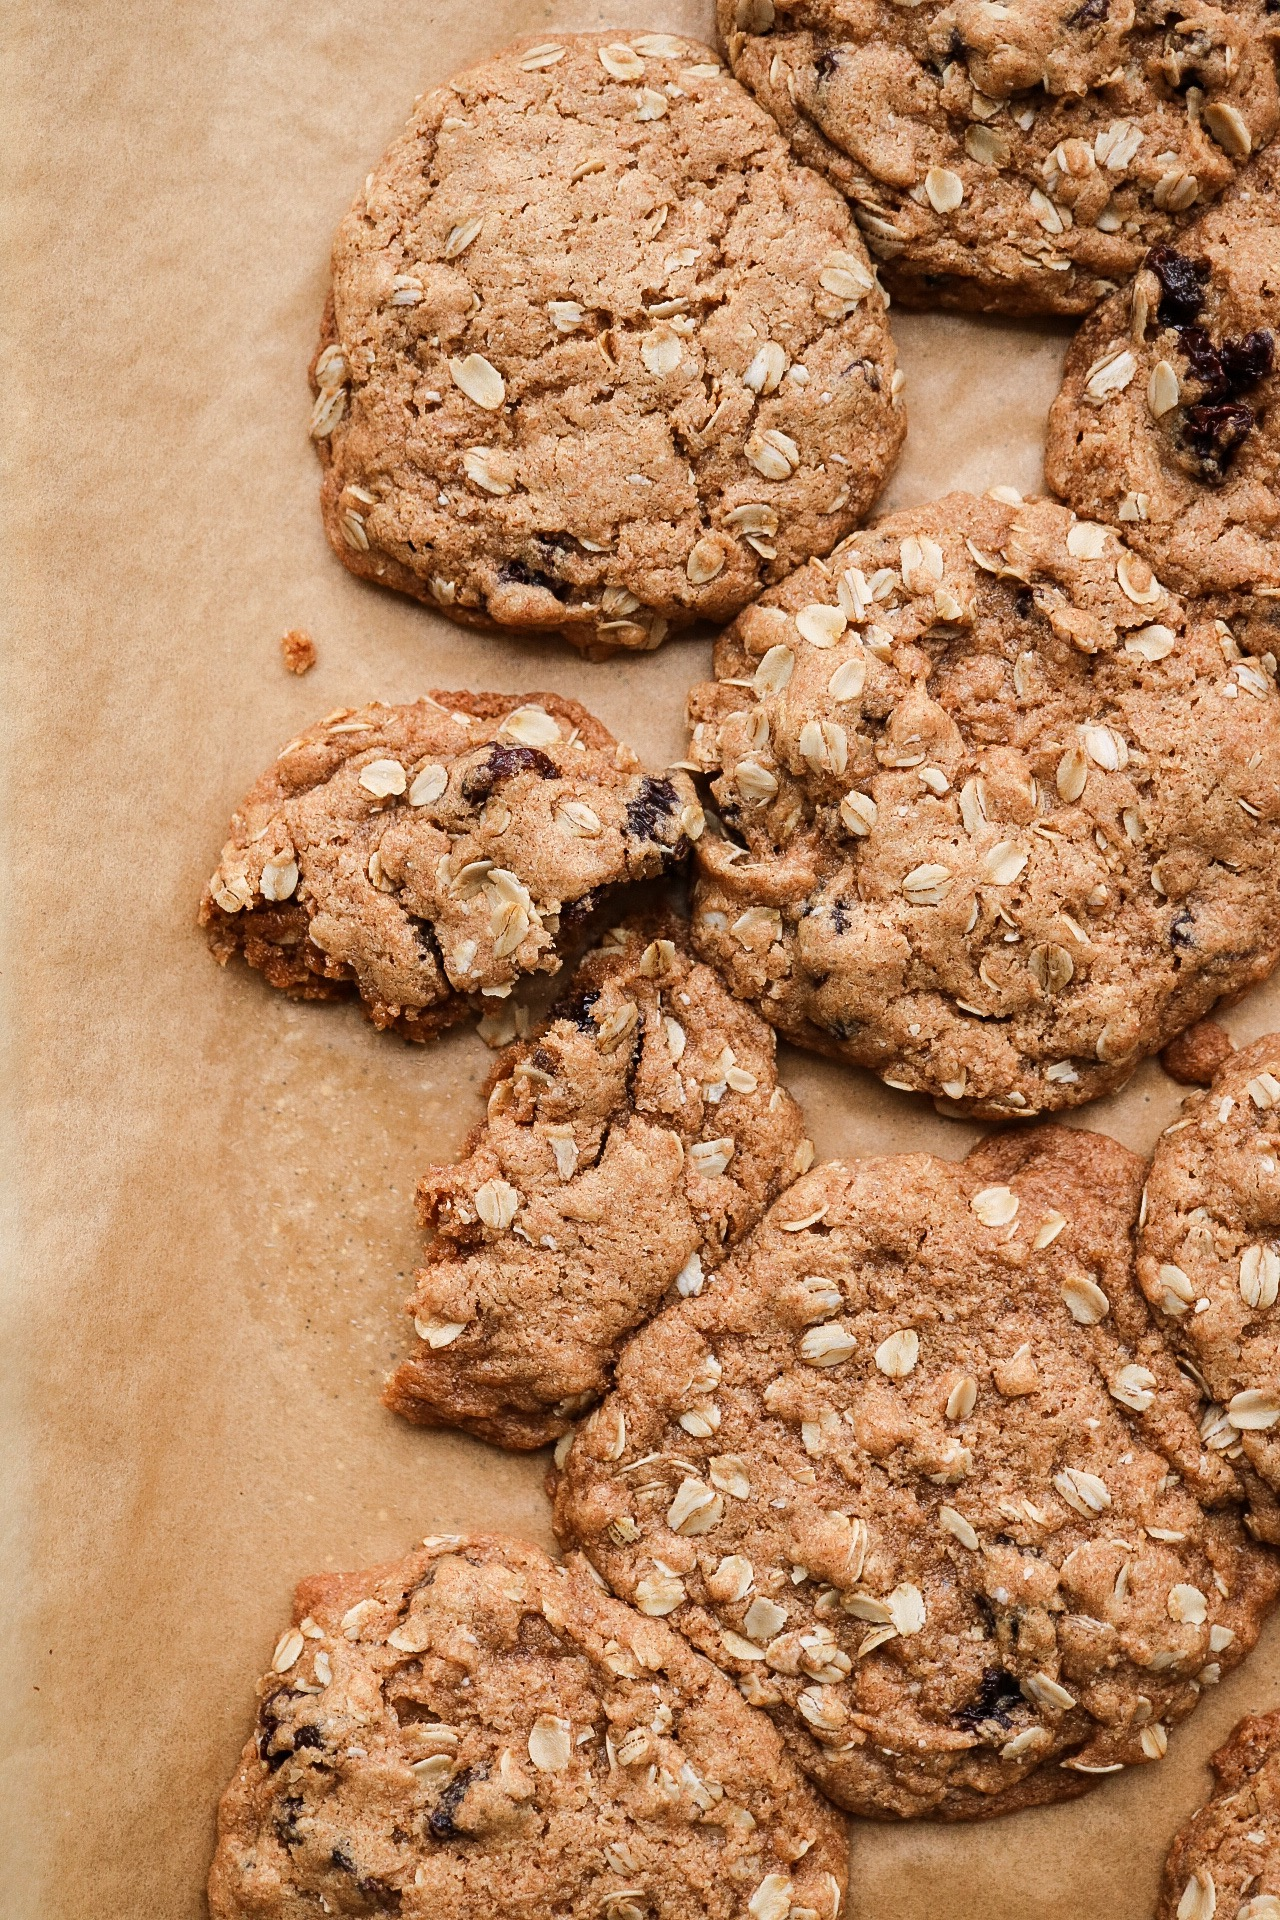 Bake only for 12-13 minutes! If you like really crispy cookies, you could add an extra minute but they're best when they're still a bit soft.